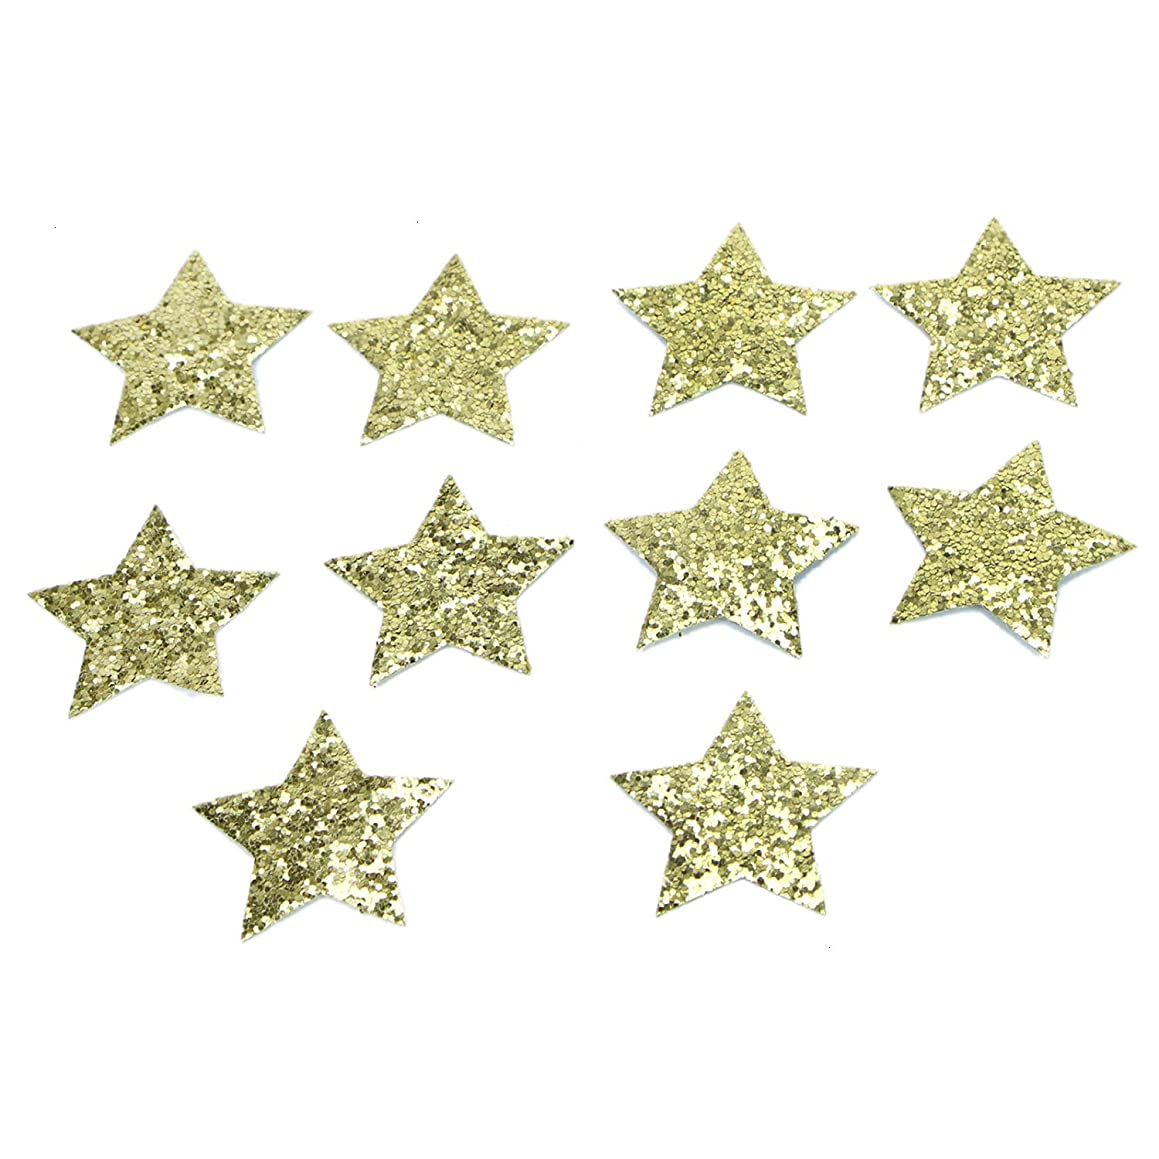 Monrocco 10Pcs Gold Iron-on Sequins Star Heart Shaped Patch Decoration DIY Appliques